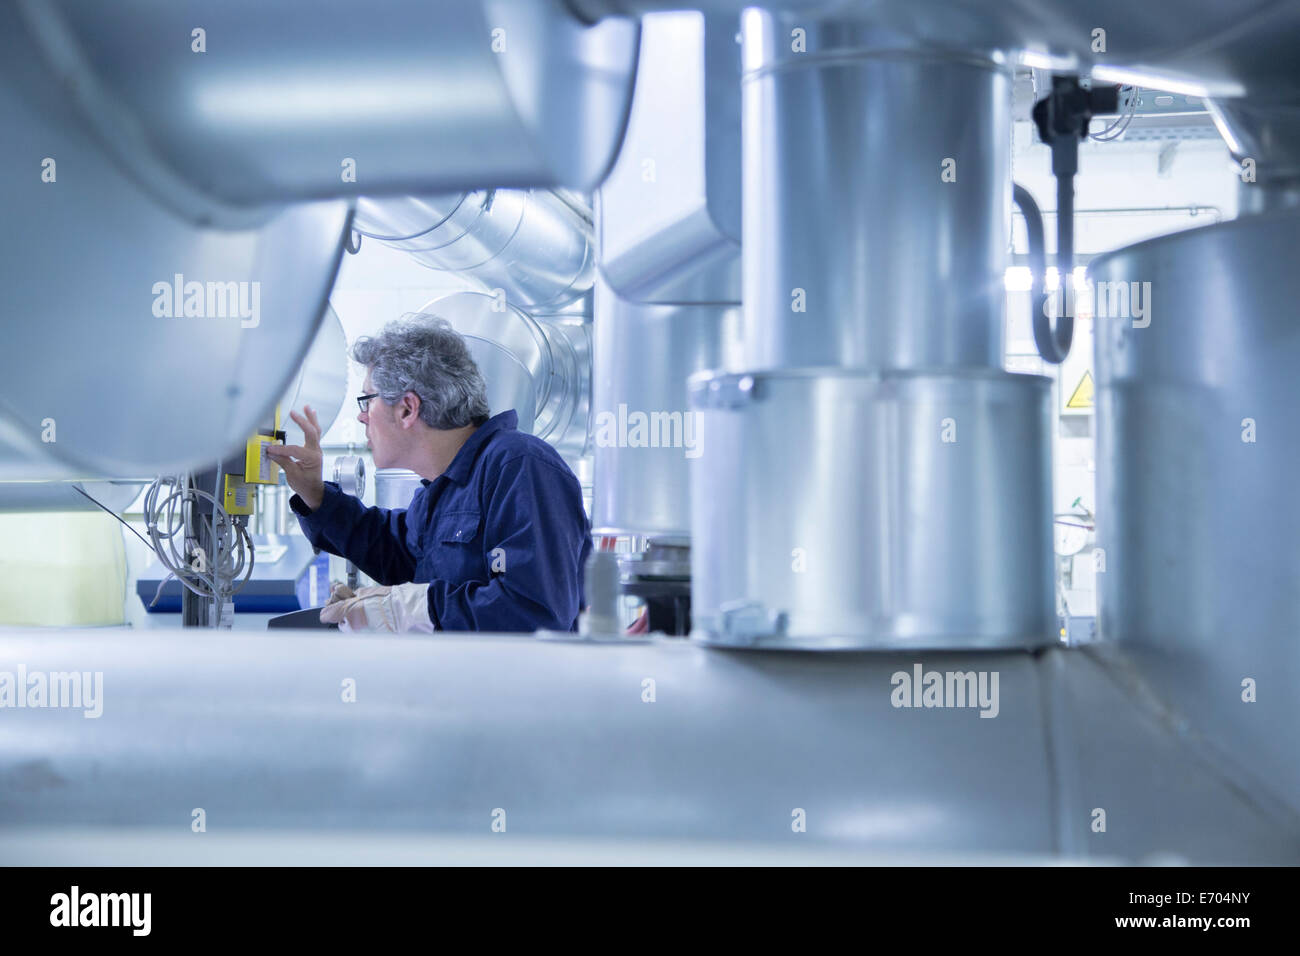 Engineer adjusting control panel in power station - Stock Image